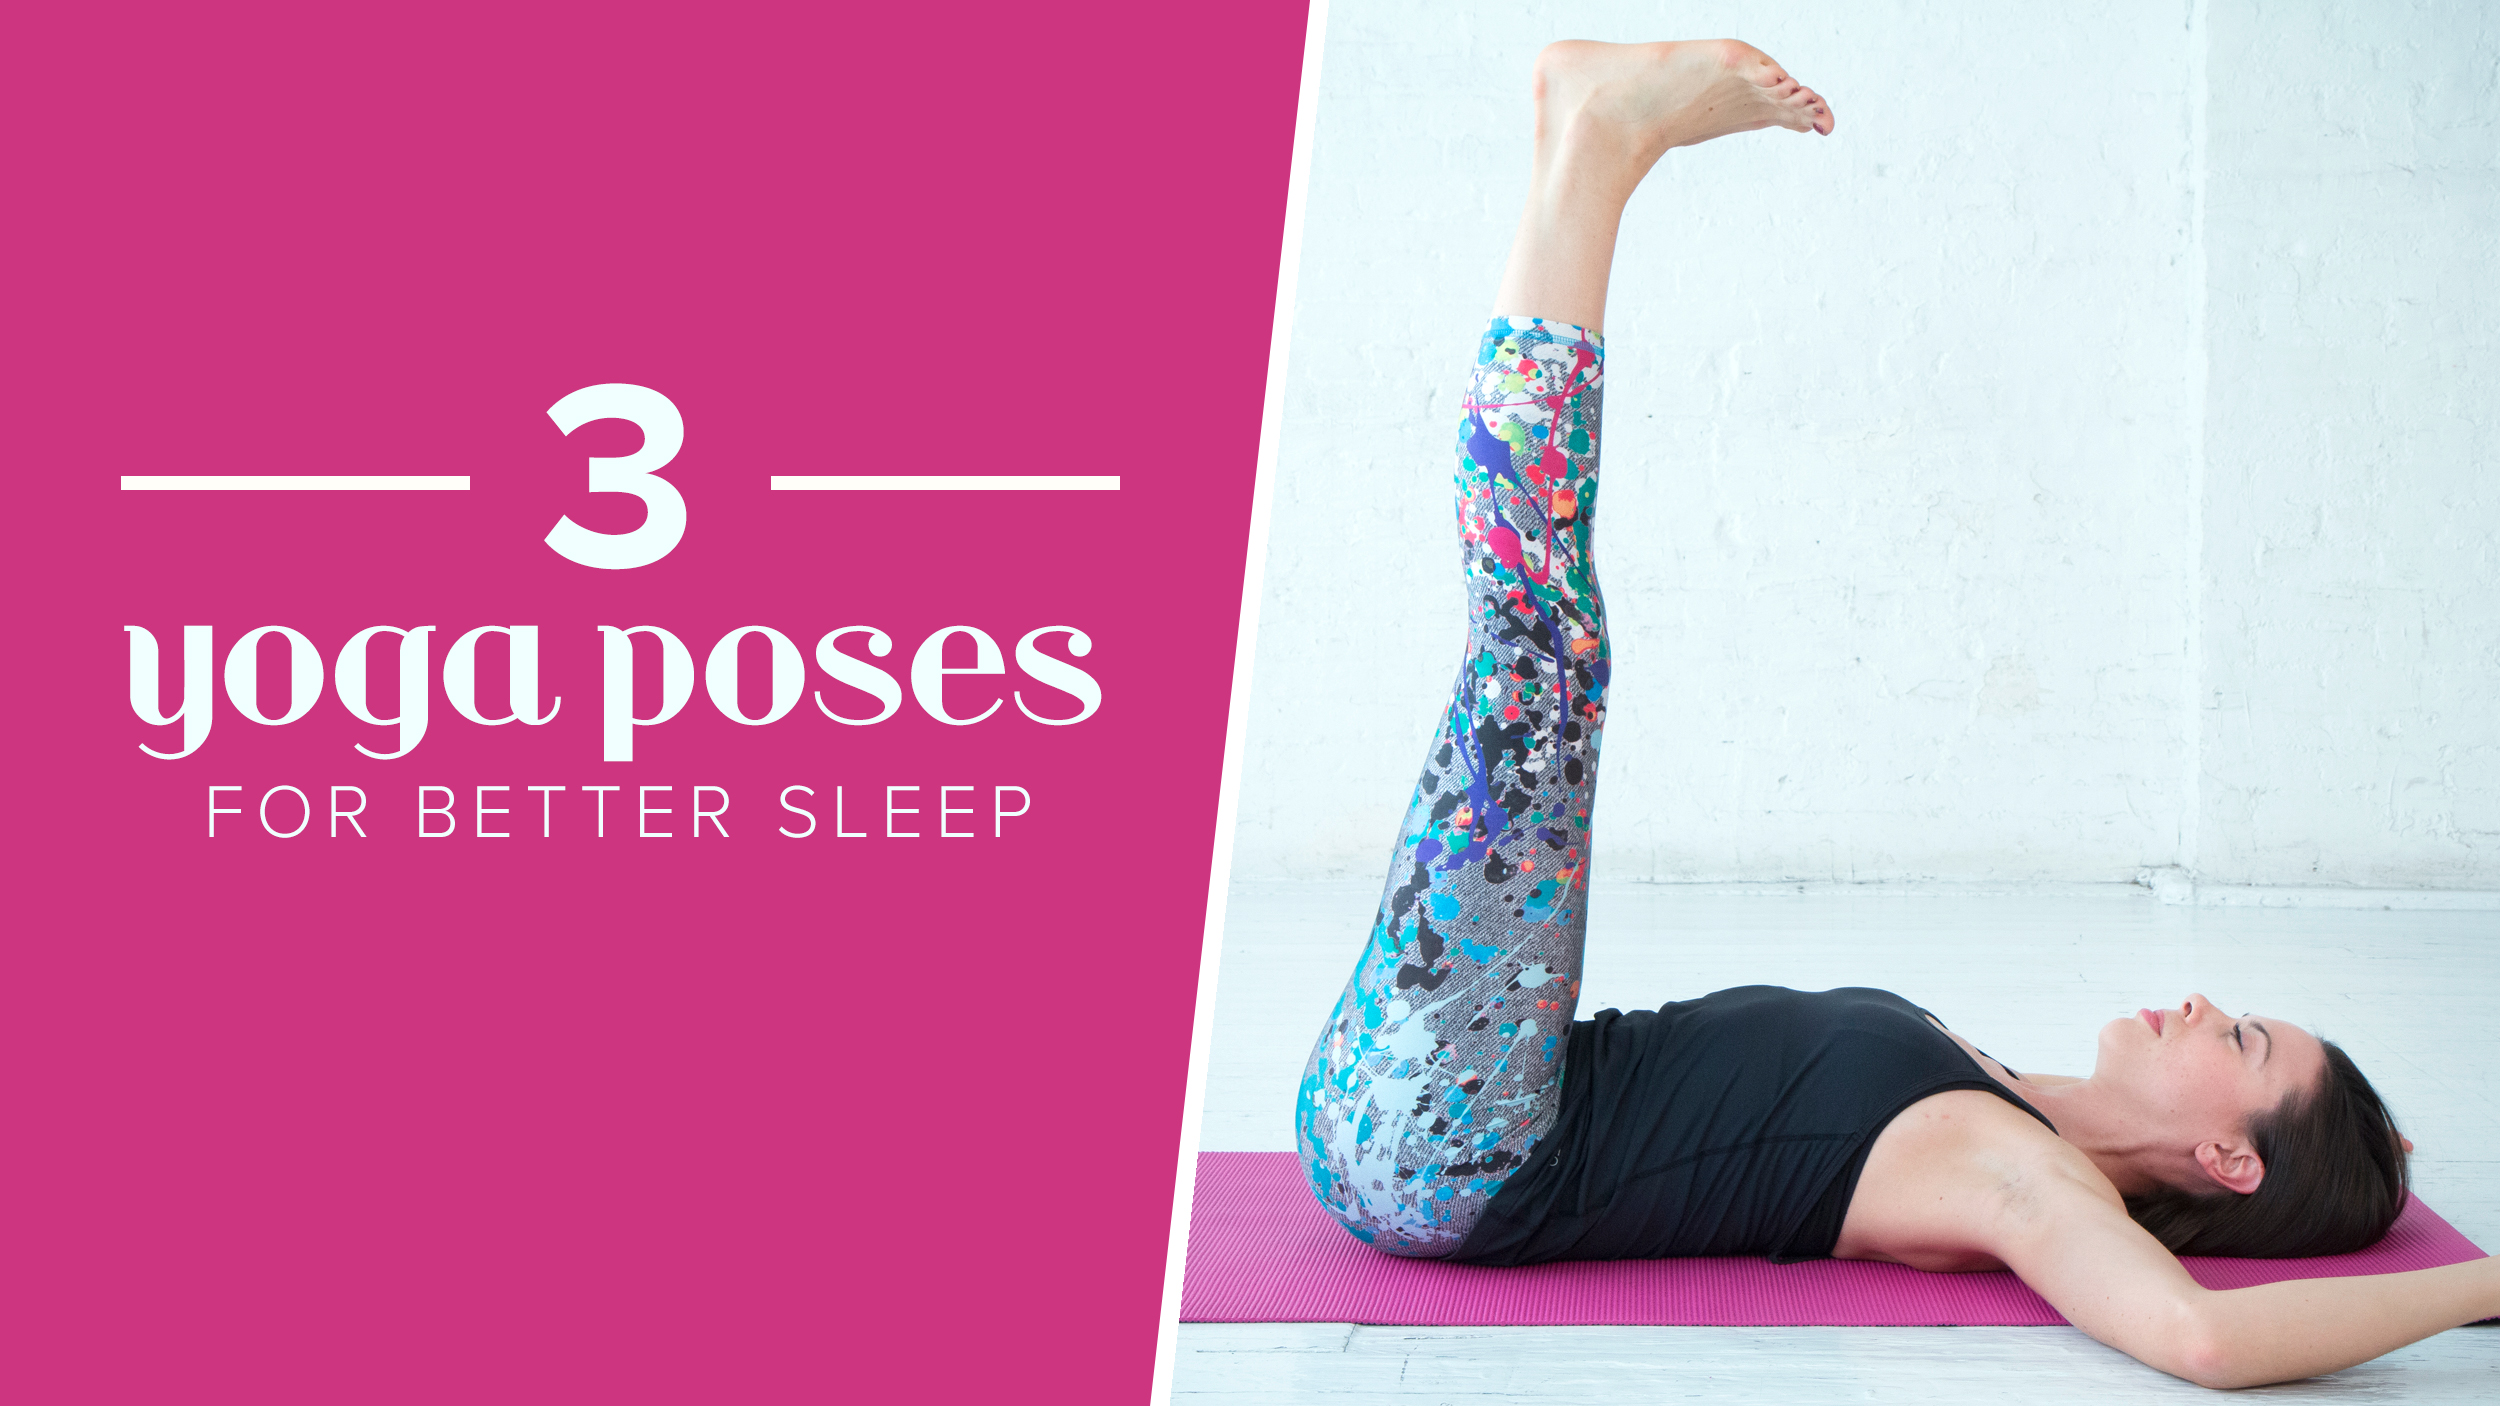 Yoga poses for better sleep